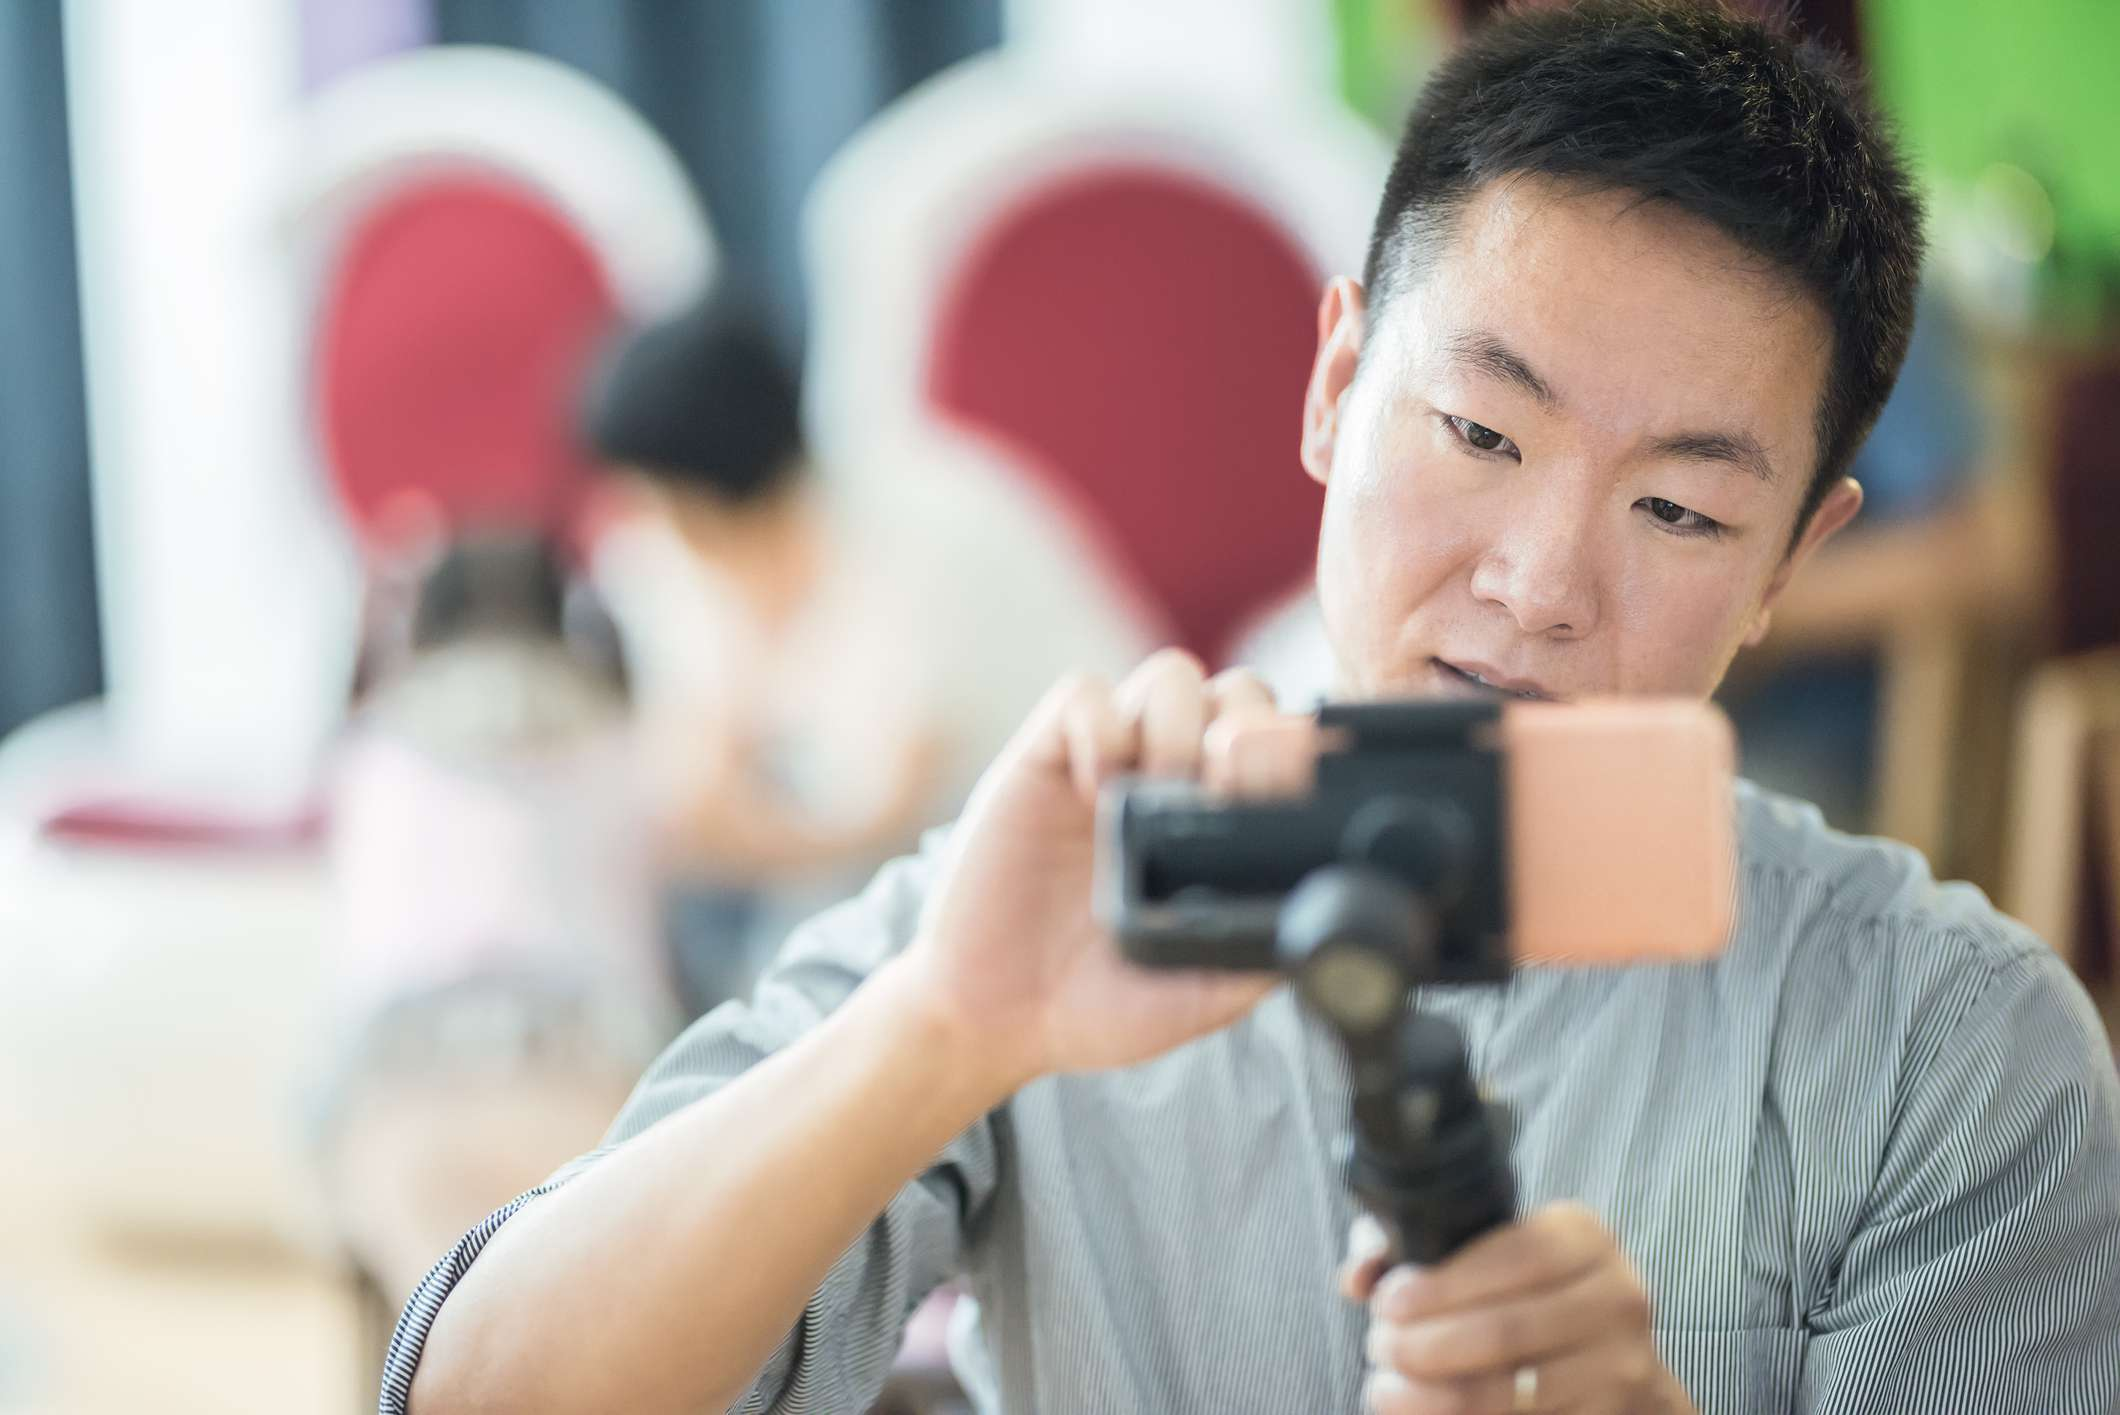 Someone using a smartphone on a tripod stabilizer to take photos.